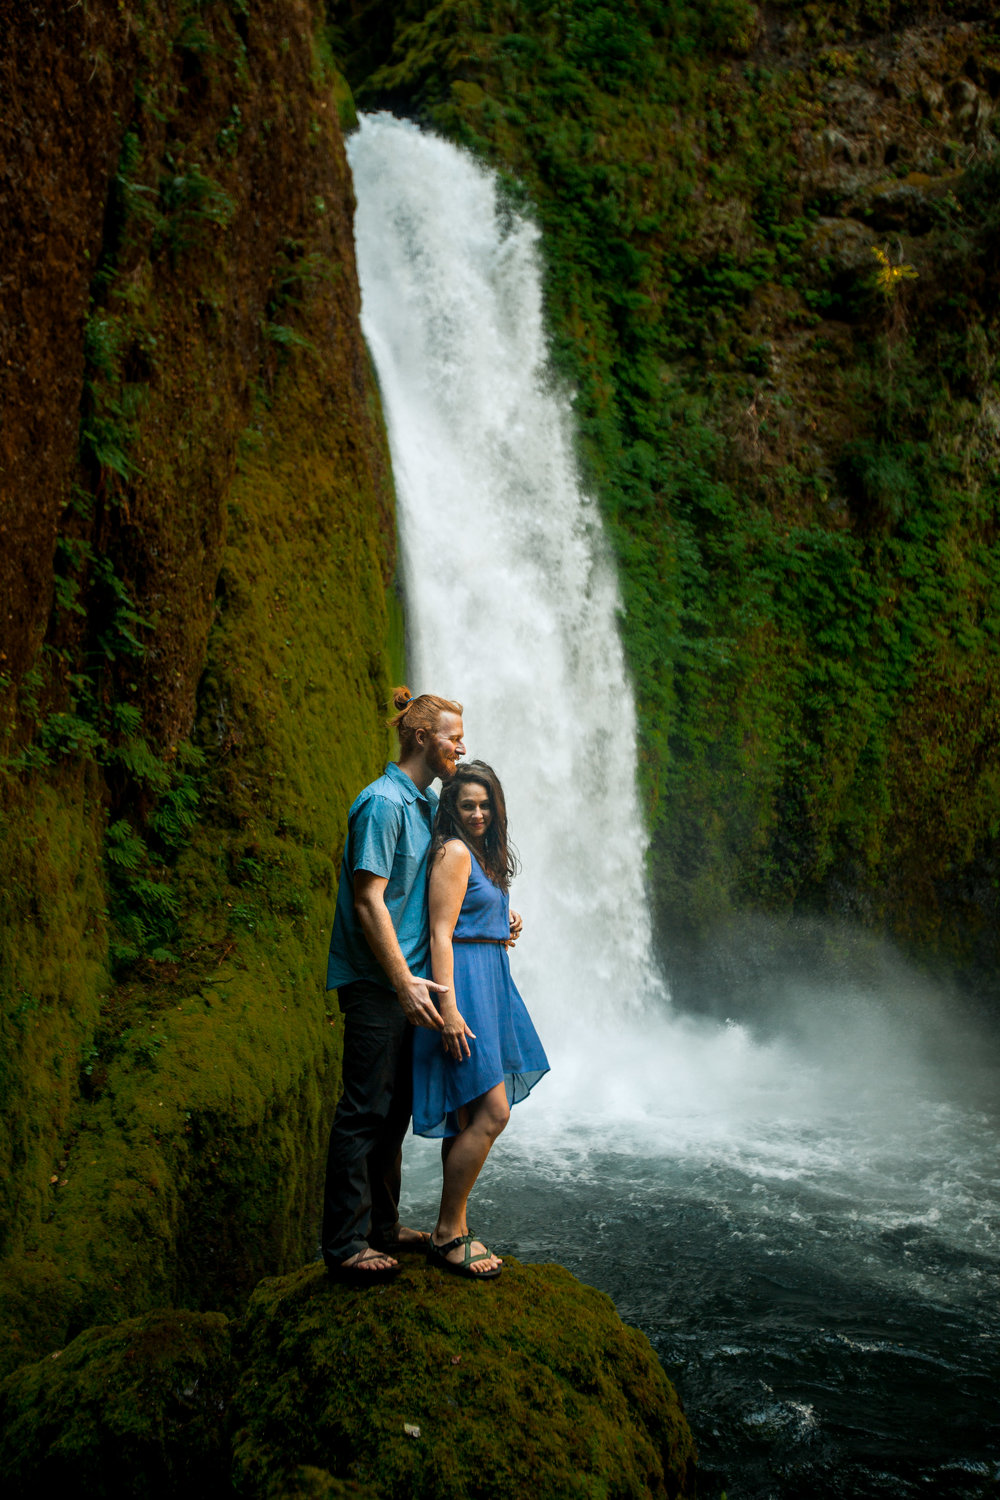 nicole-daacke-photography-wahclella-falls-waterfall-engagement-session-portland-engagement-photographer-columbia-river-gorge-oregon-elopement-photographer-13.jpg